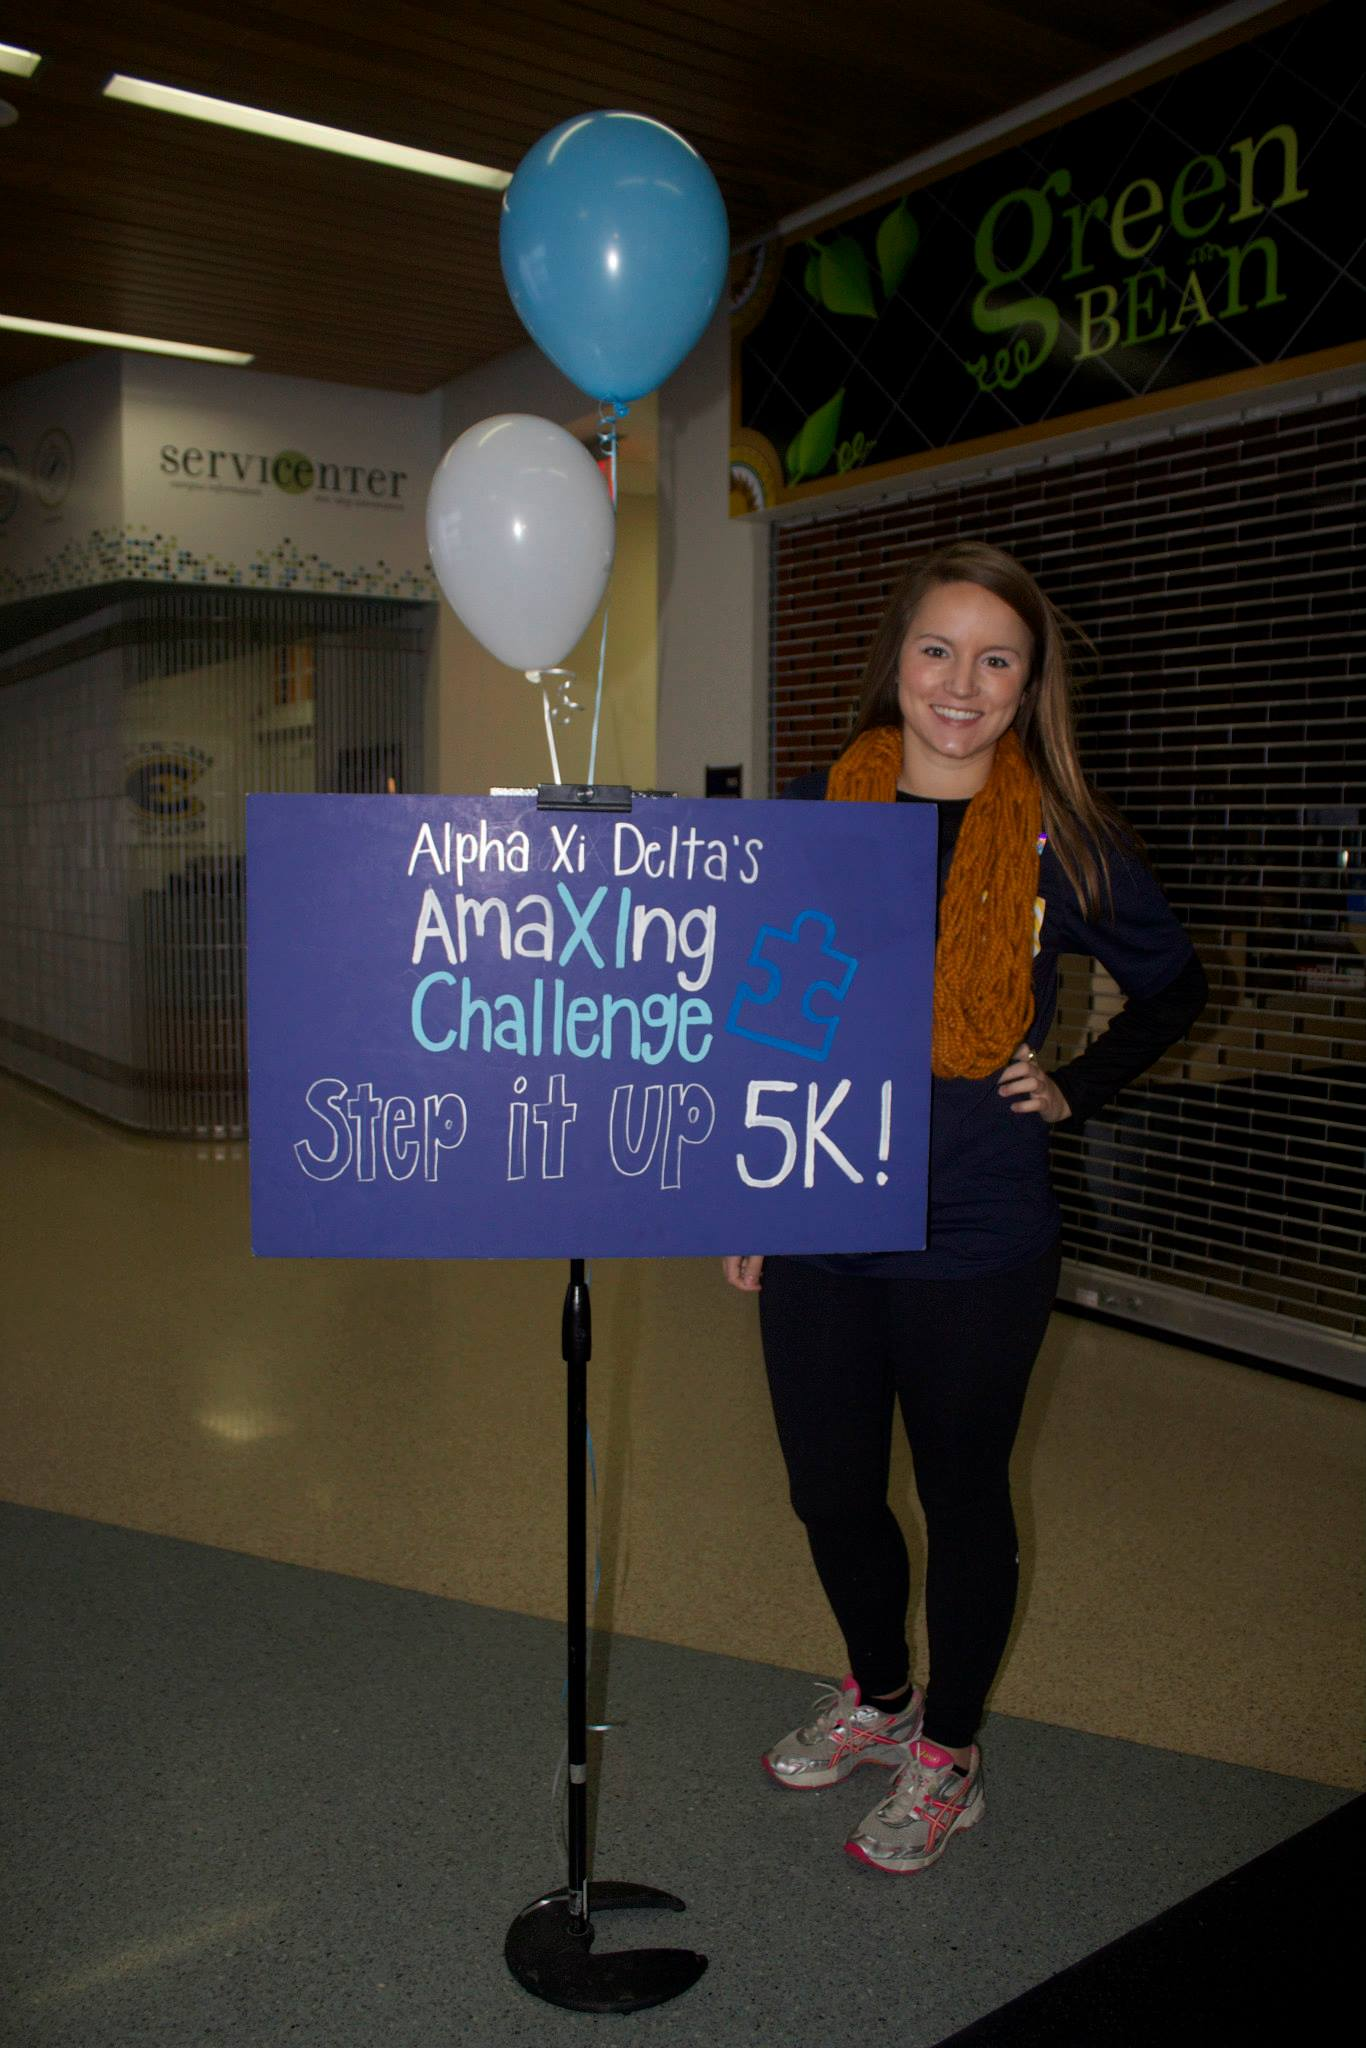 2nd Annual AmaXIng Challenge: Step It Up